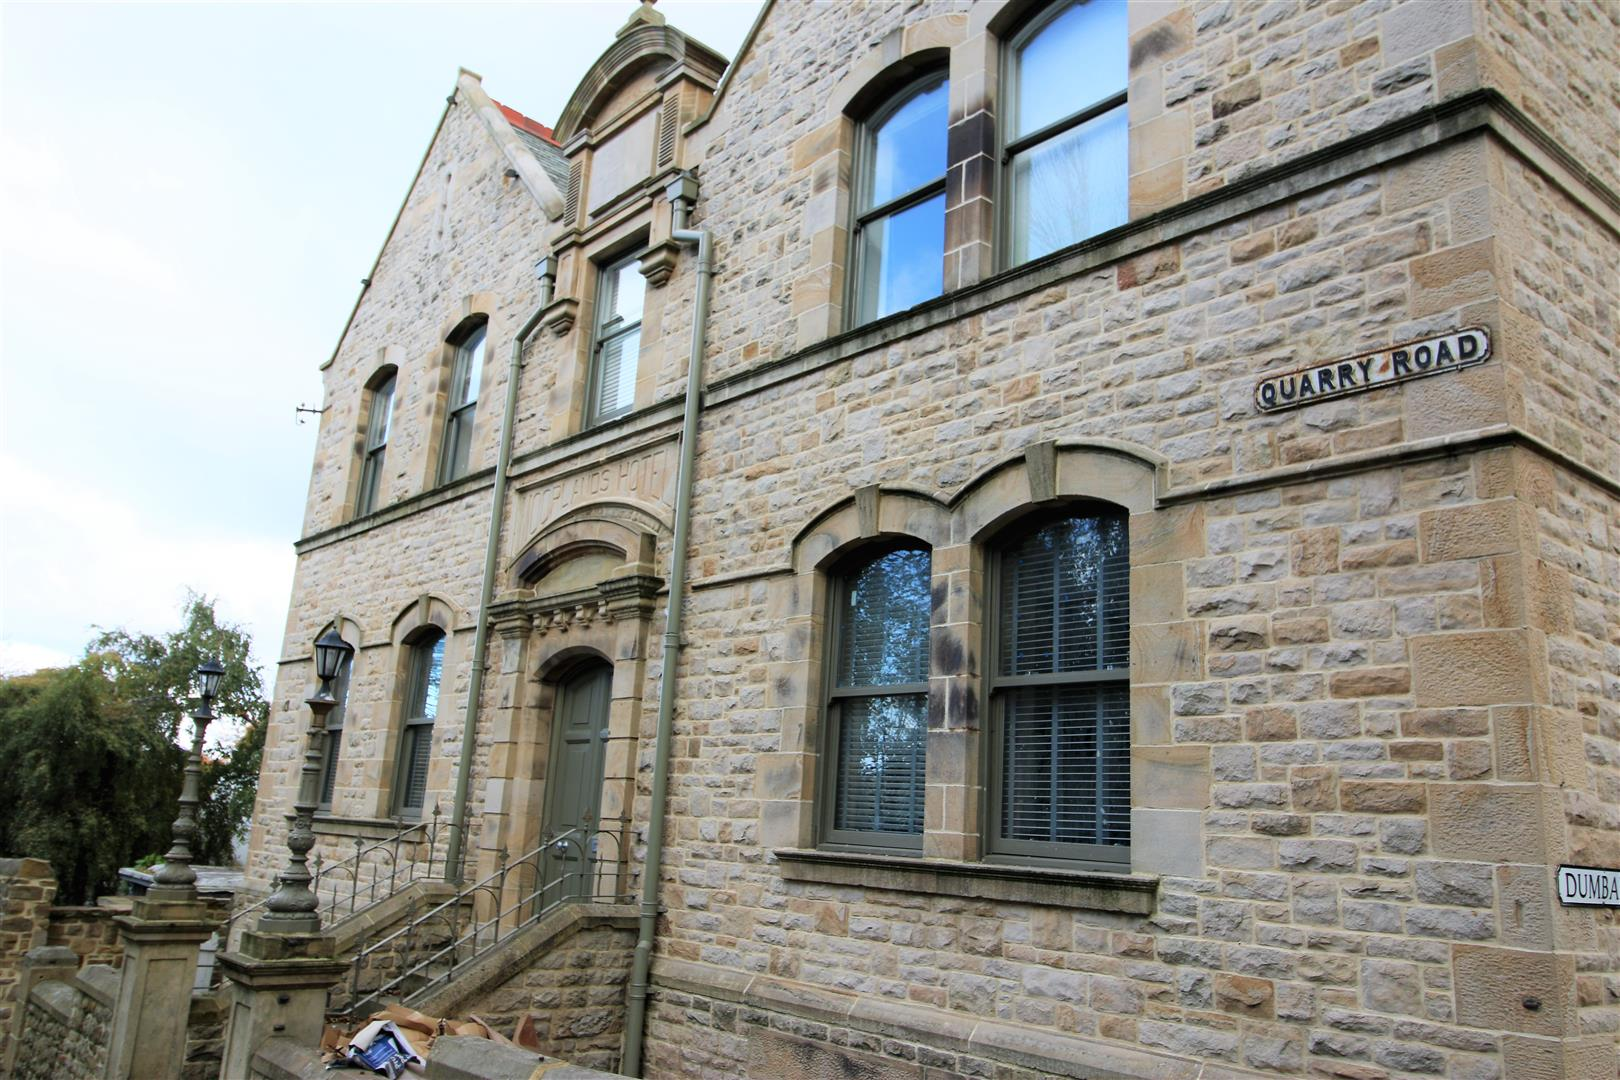 Studio 8 Moorlands Heights, Quarry Road, Lancaster, LA1 3BY